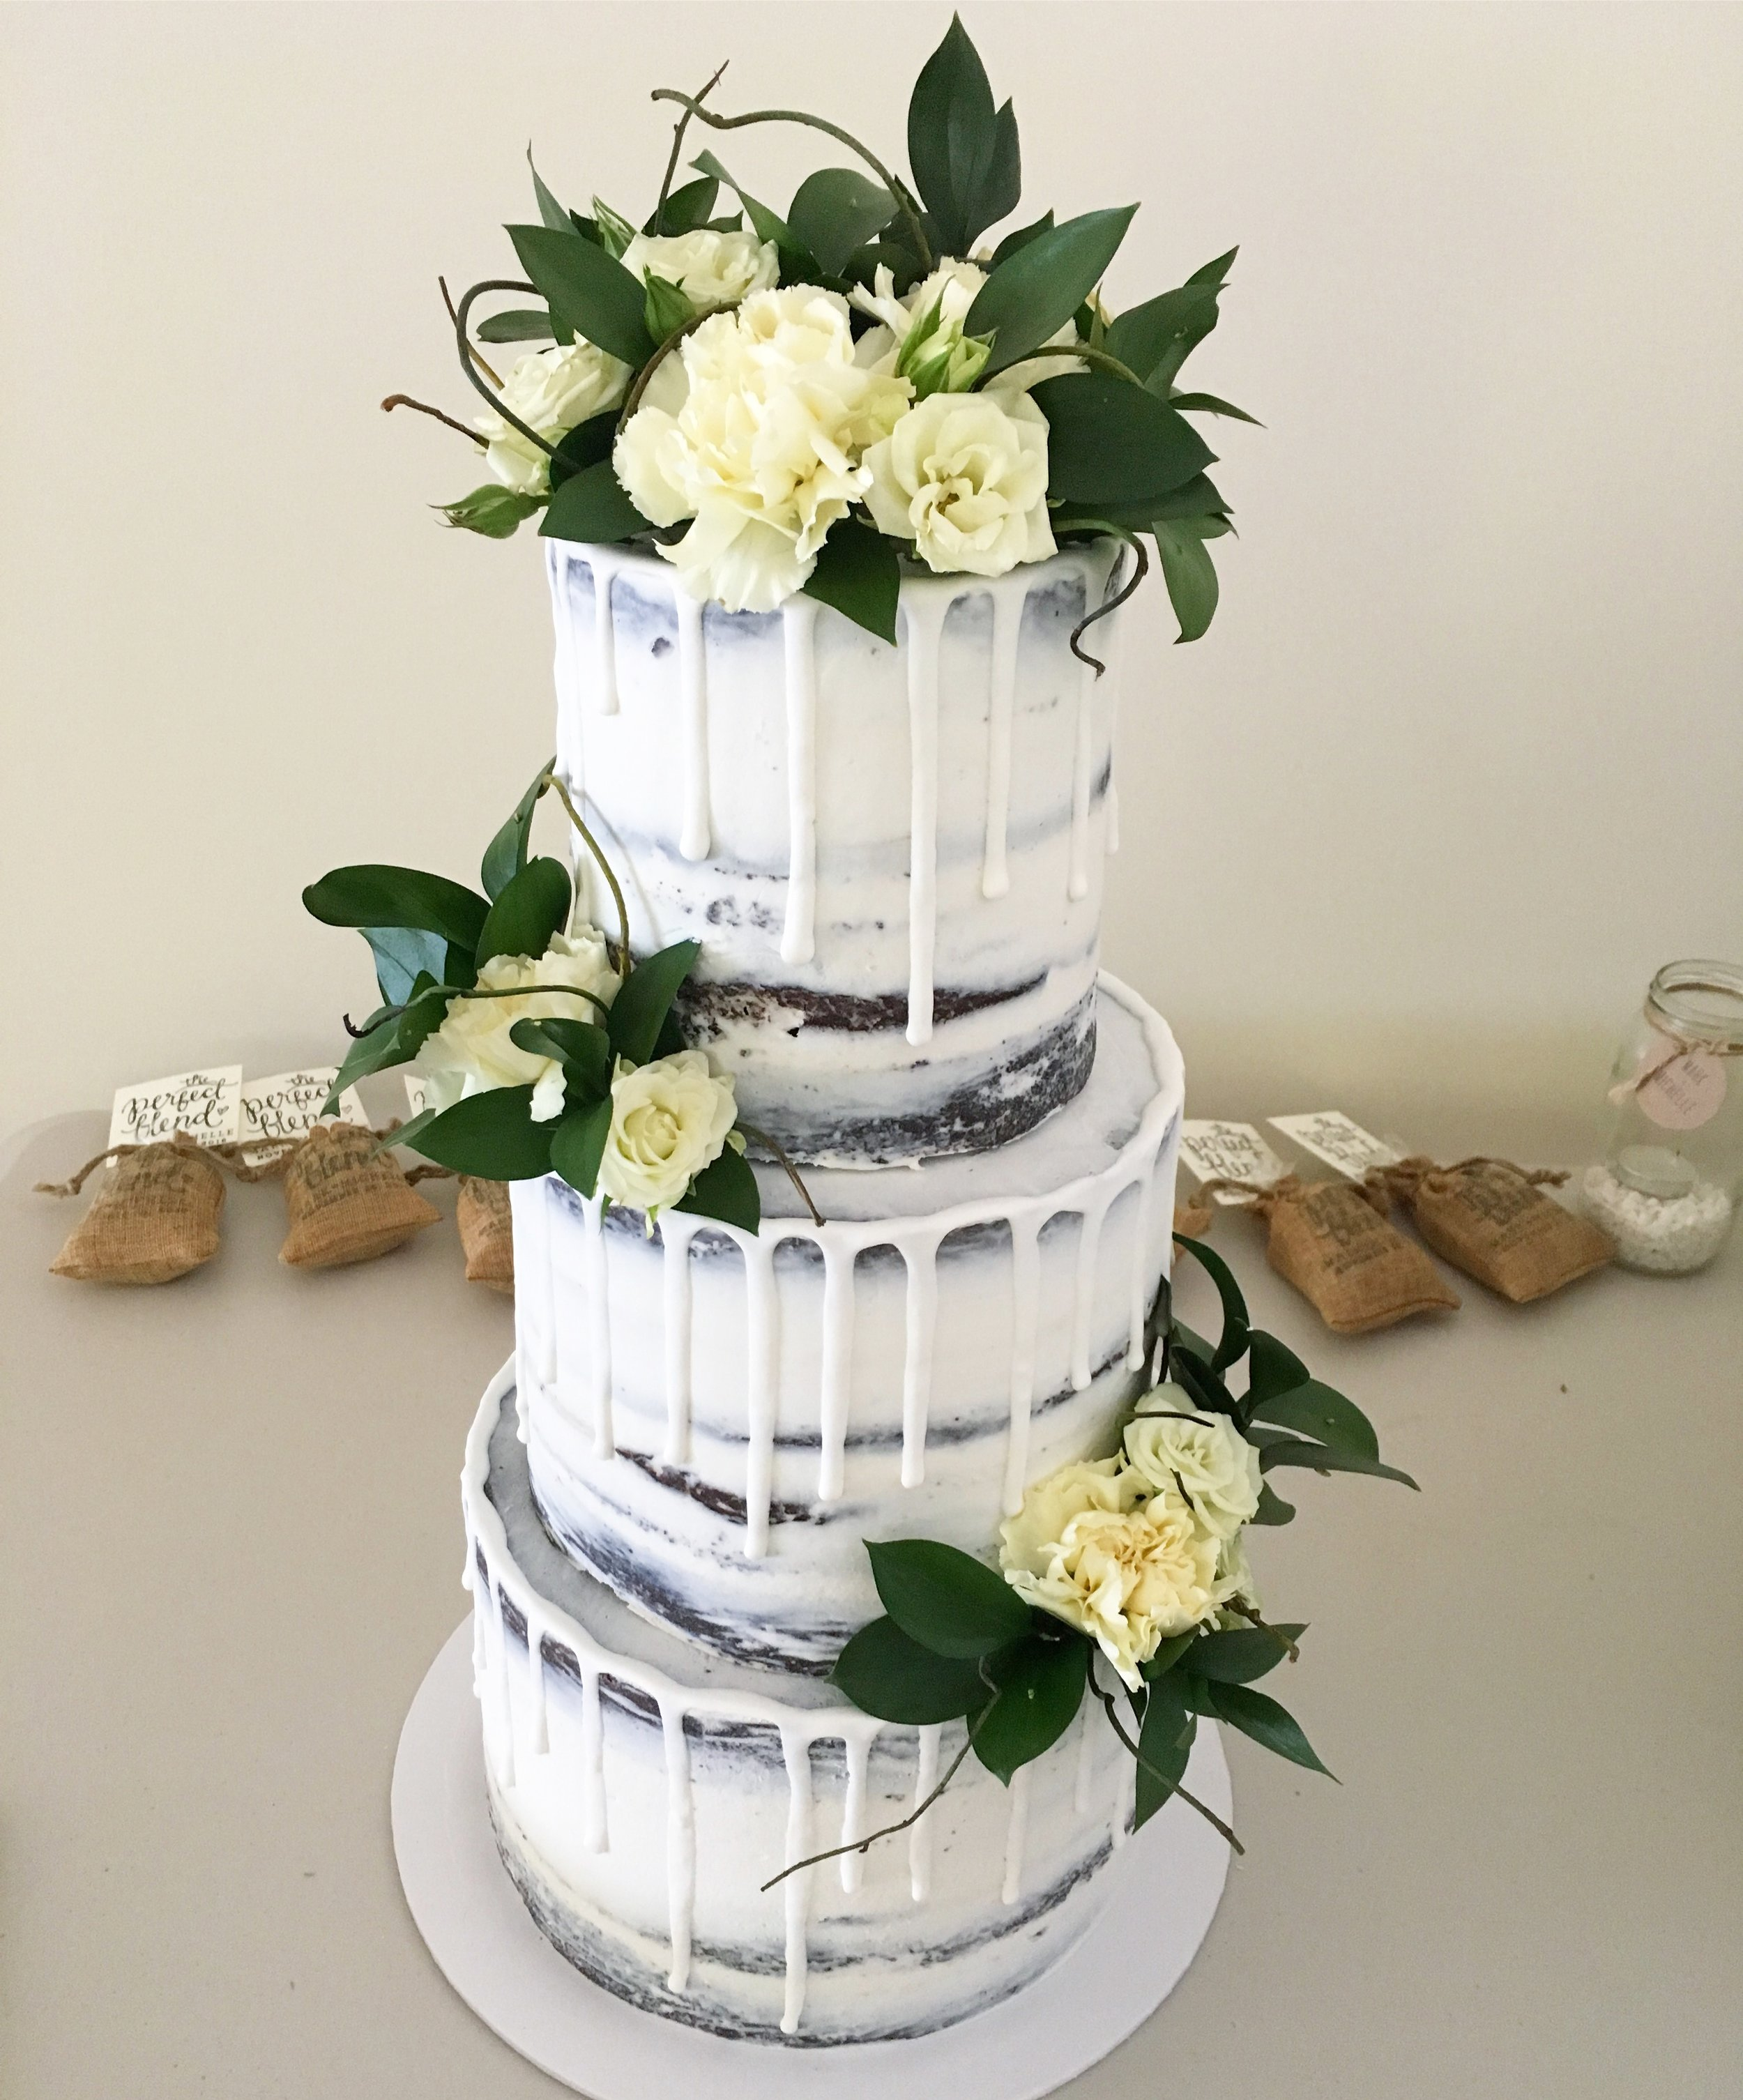 Naked Cake with Drip & Flowers